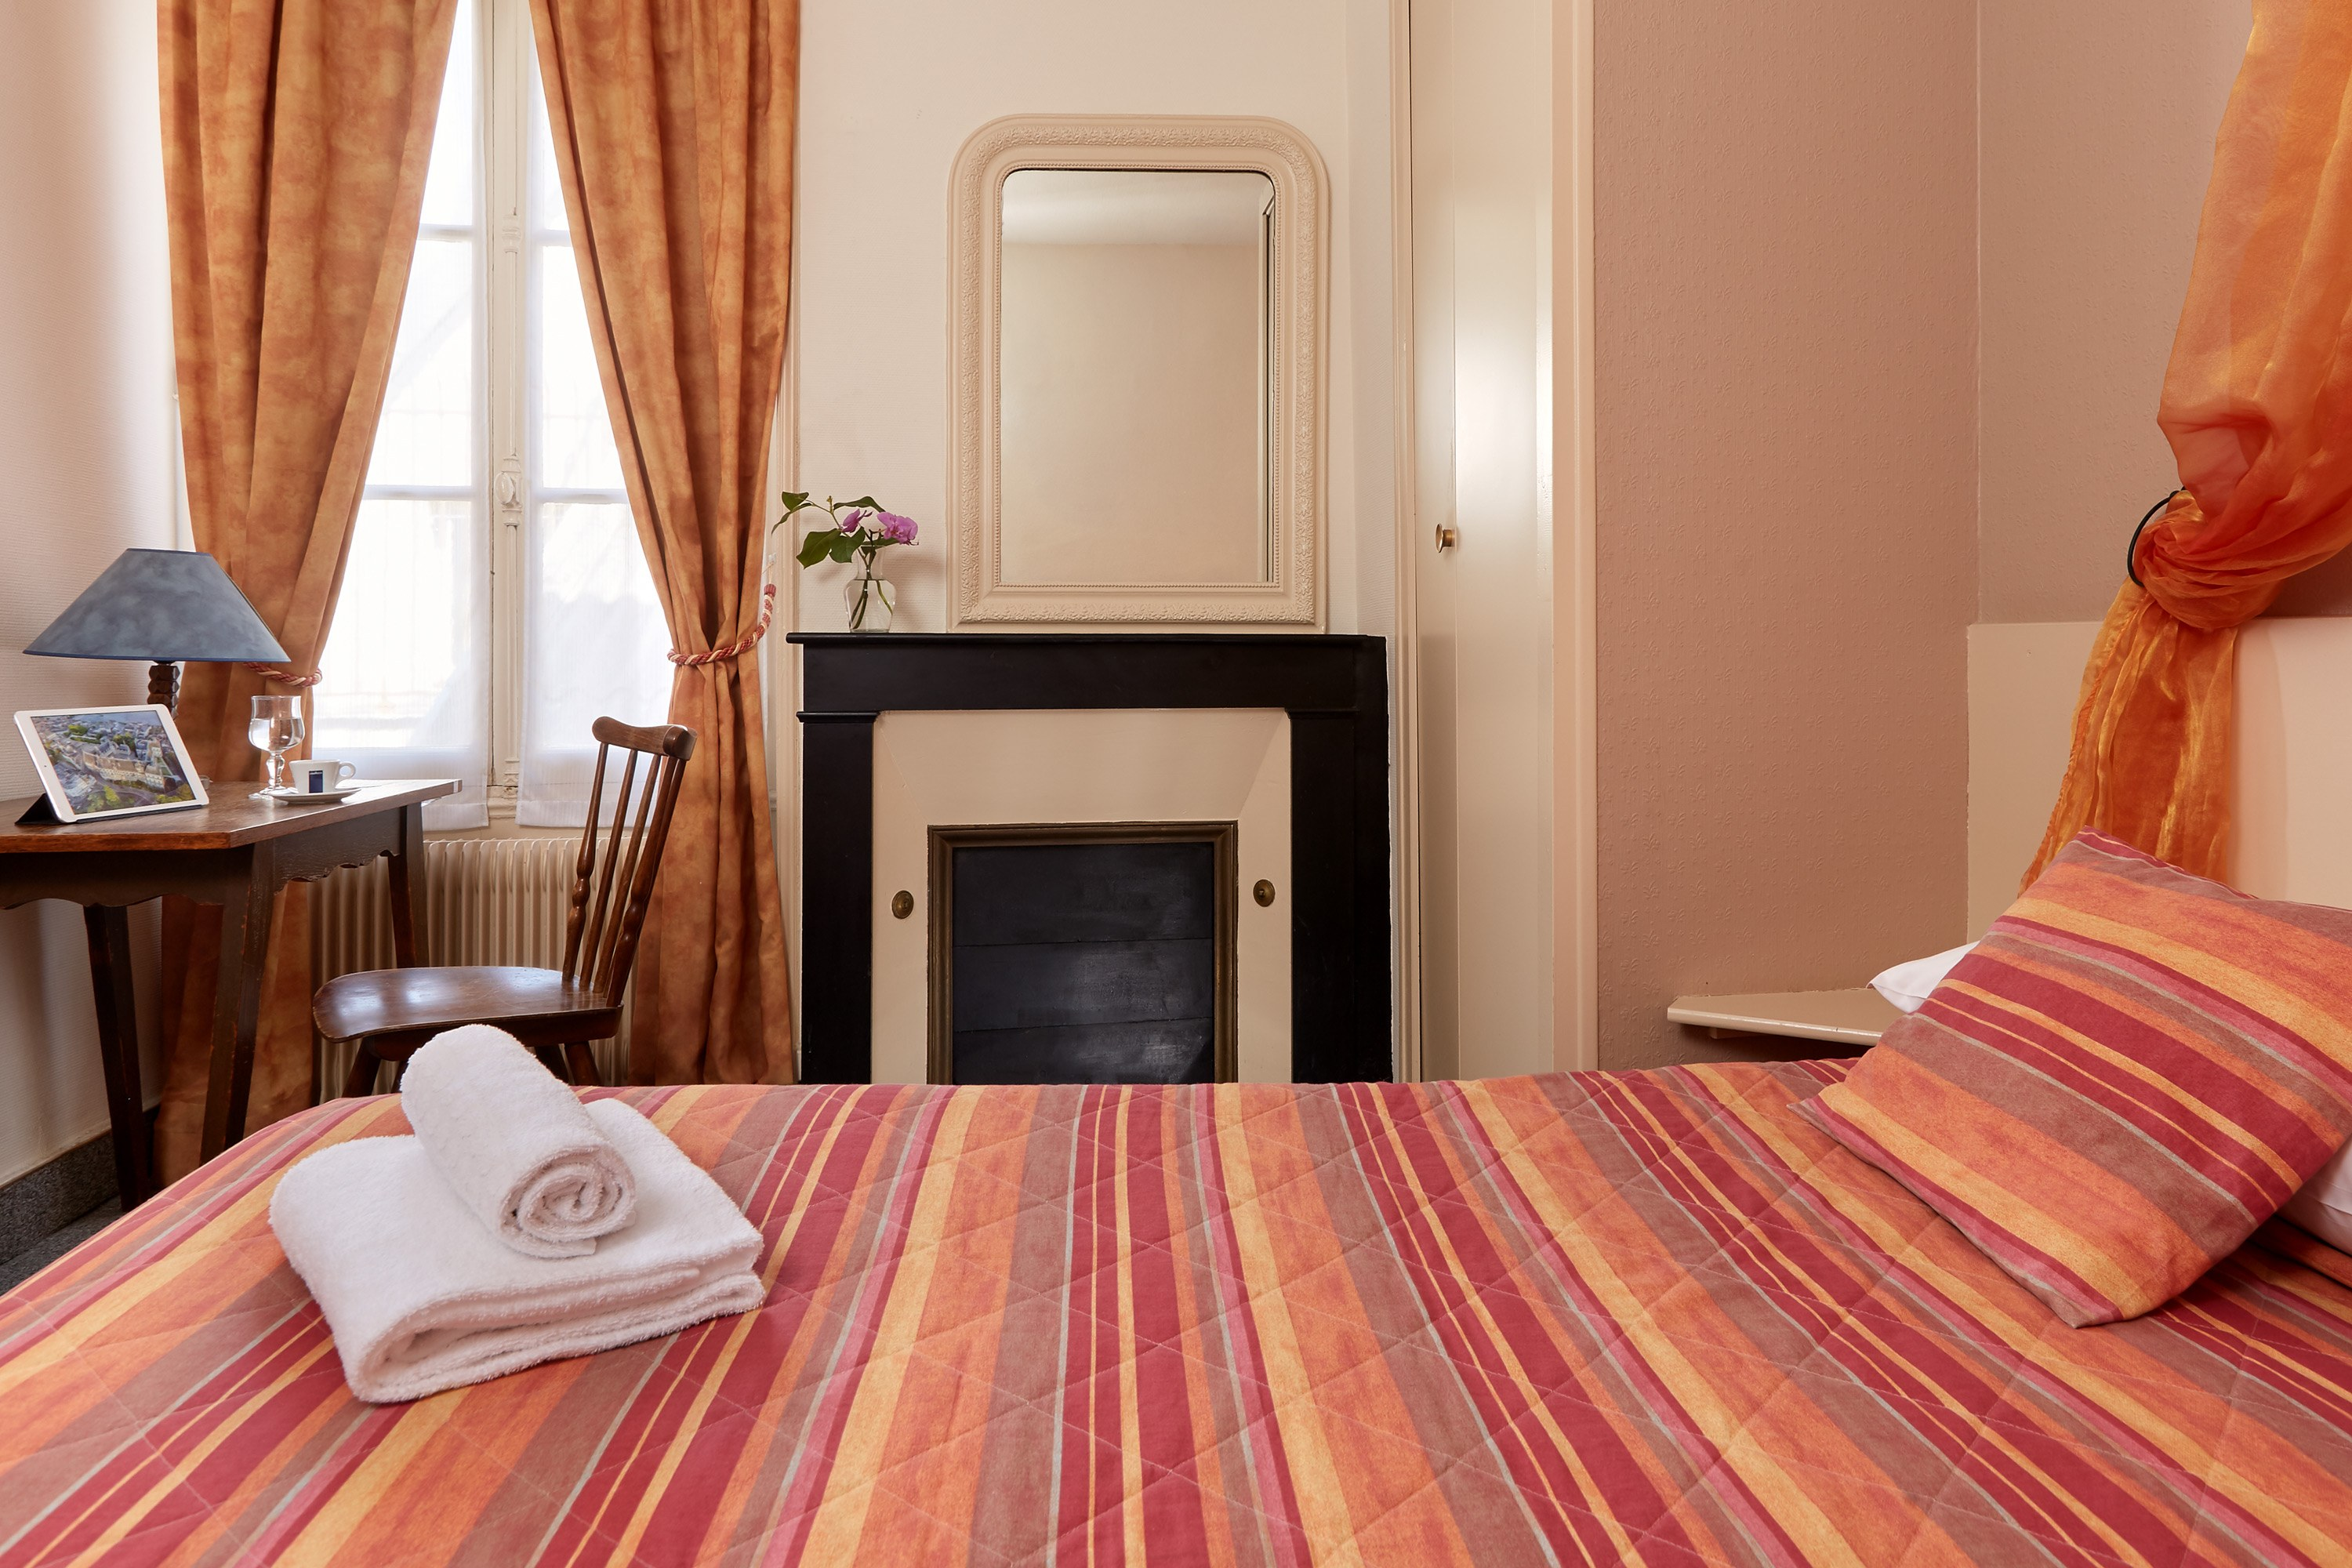 Hotel-France-Guise-Blois-Double